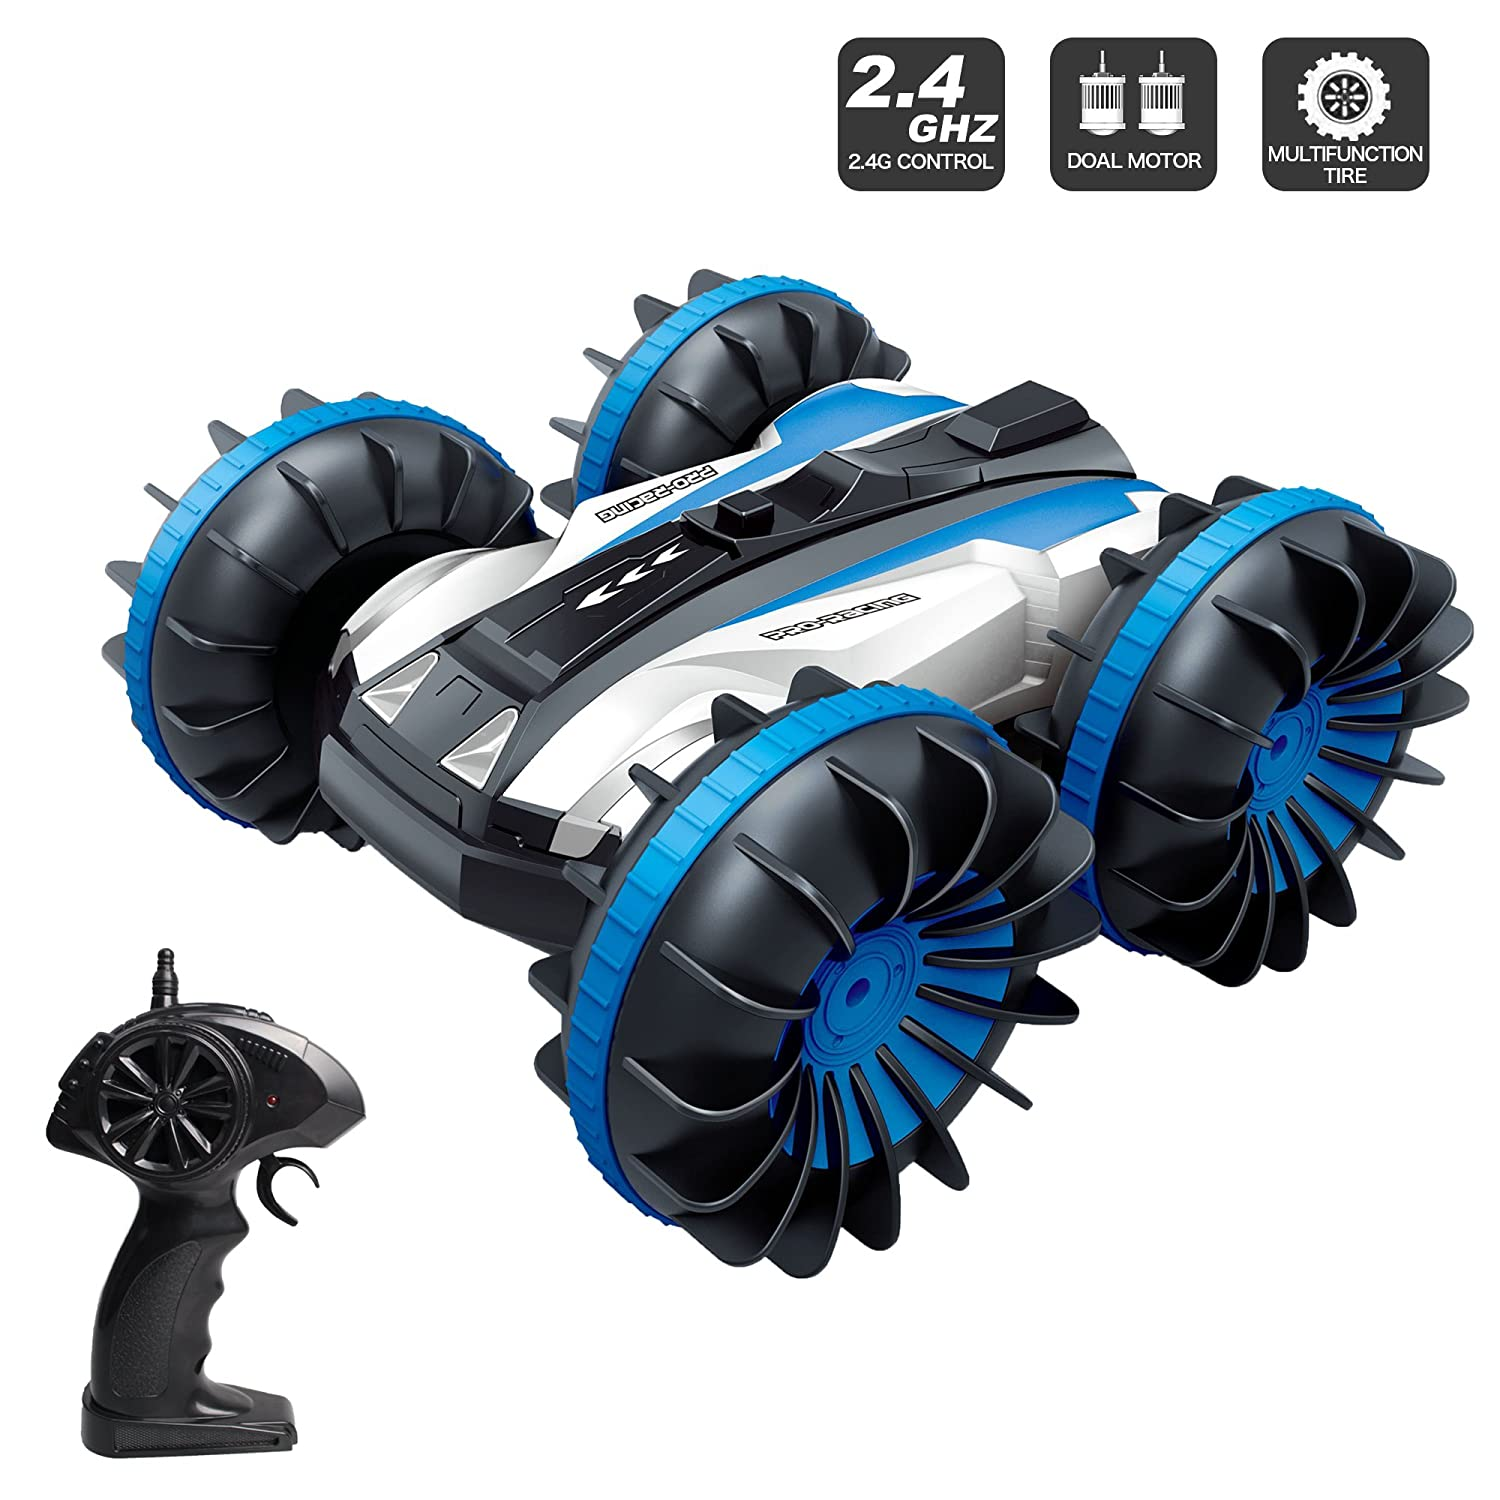 JIECAN 2.4Ghz 4WD Water and Land Amphibious Remote Control Waterproof Electric Stunt Land Car Toy Monster Boat Truck with Double-Sided Rotate, 360 Degree Spinning and Flips - Top 6 Amazing Gadgets